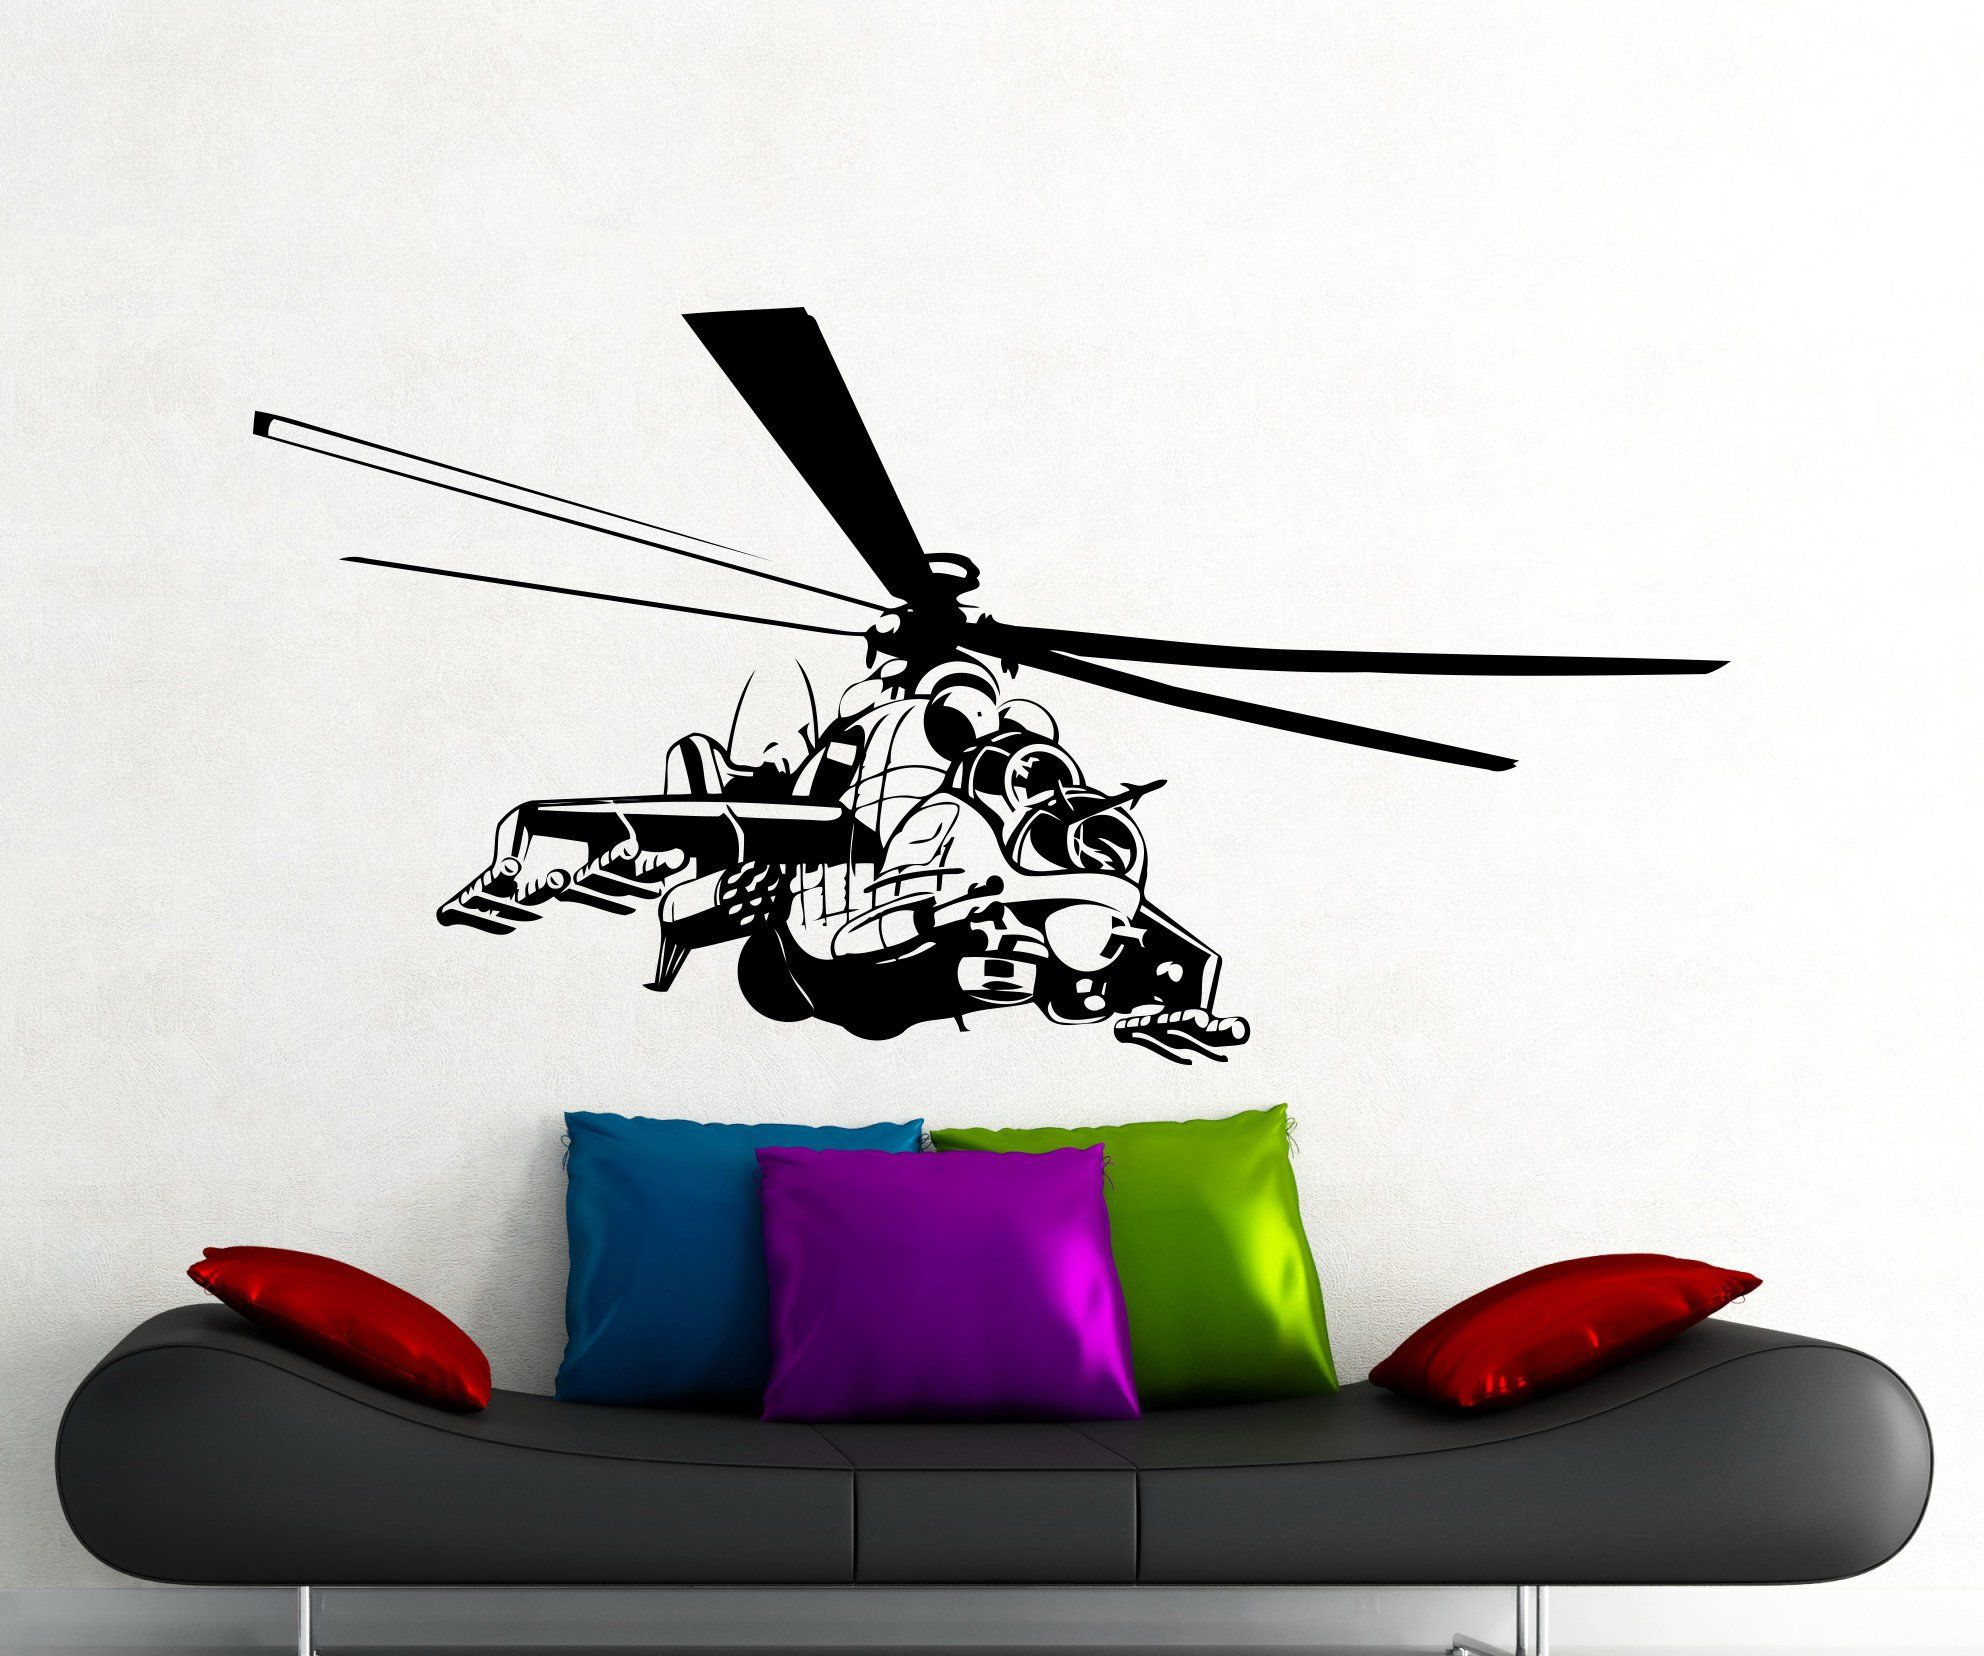 "Helicopter Wall Decal Aircraft Air Forces Military Copter Vinyl Sticker Home Nursery Kids Boy Girl Room Interior Art Decoration Any Room Mural Waterproof High Quality Vinyl Sticker (123xx). Awesome Stickers For ANY Exterior or Interior. EASY to Apply You Will get The instruction. REAL SIZES are from 22"" x 22"" to 22"" x 40"" it depends on the design and I will do the biggest one. Pick a color from a color chart and send a message after a purchase or the color showing on picture. will be…"